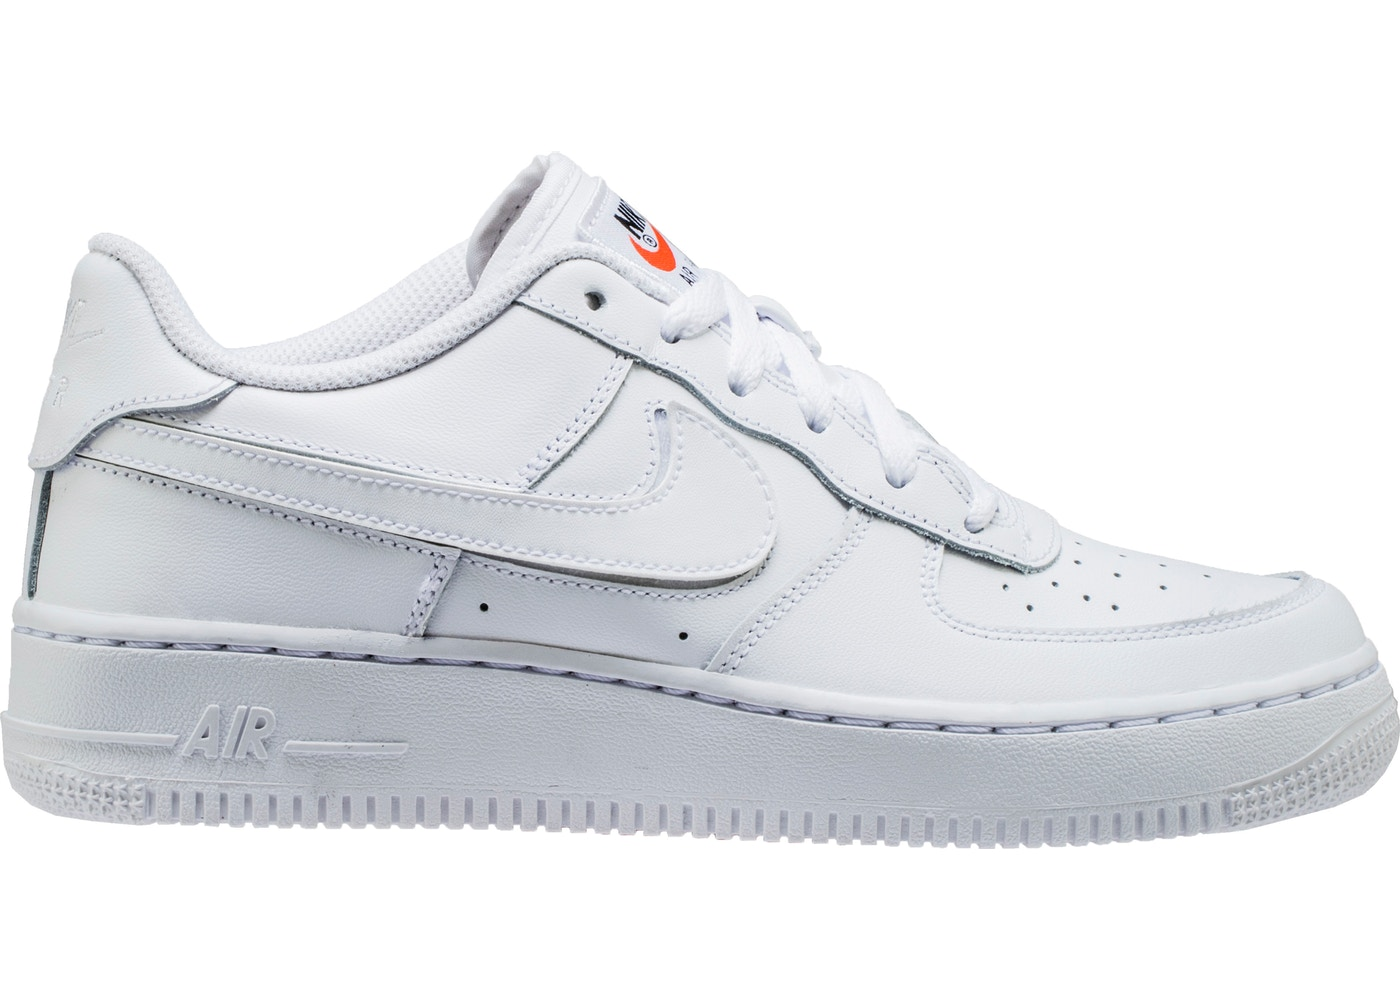 a5ee96cb41d6f3 air force 1 donna nere e bianche